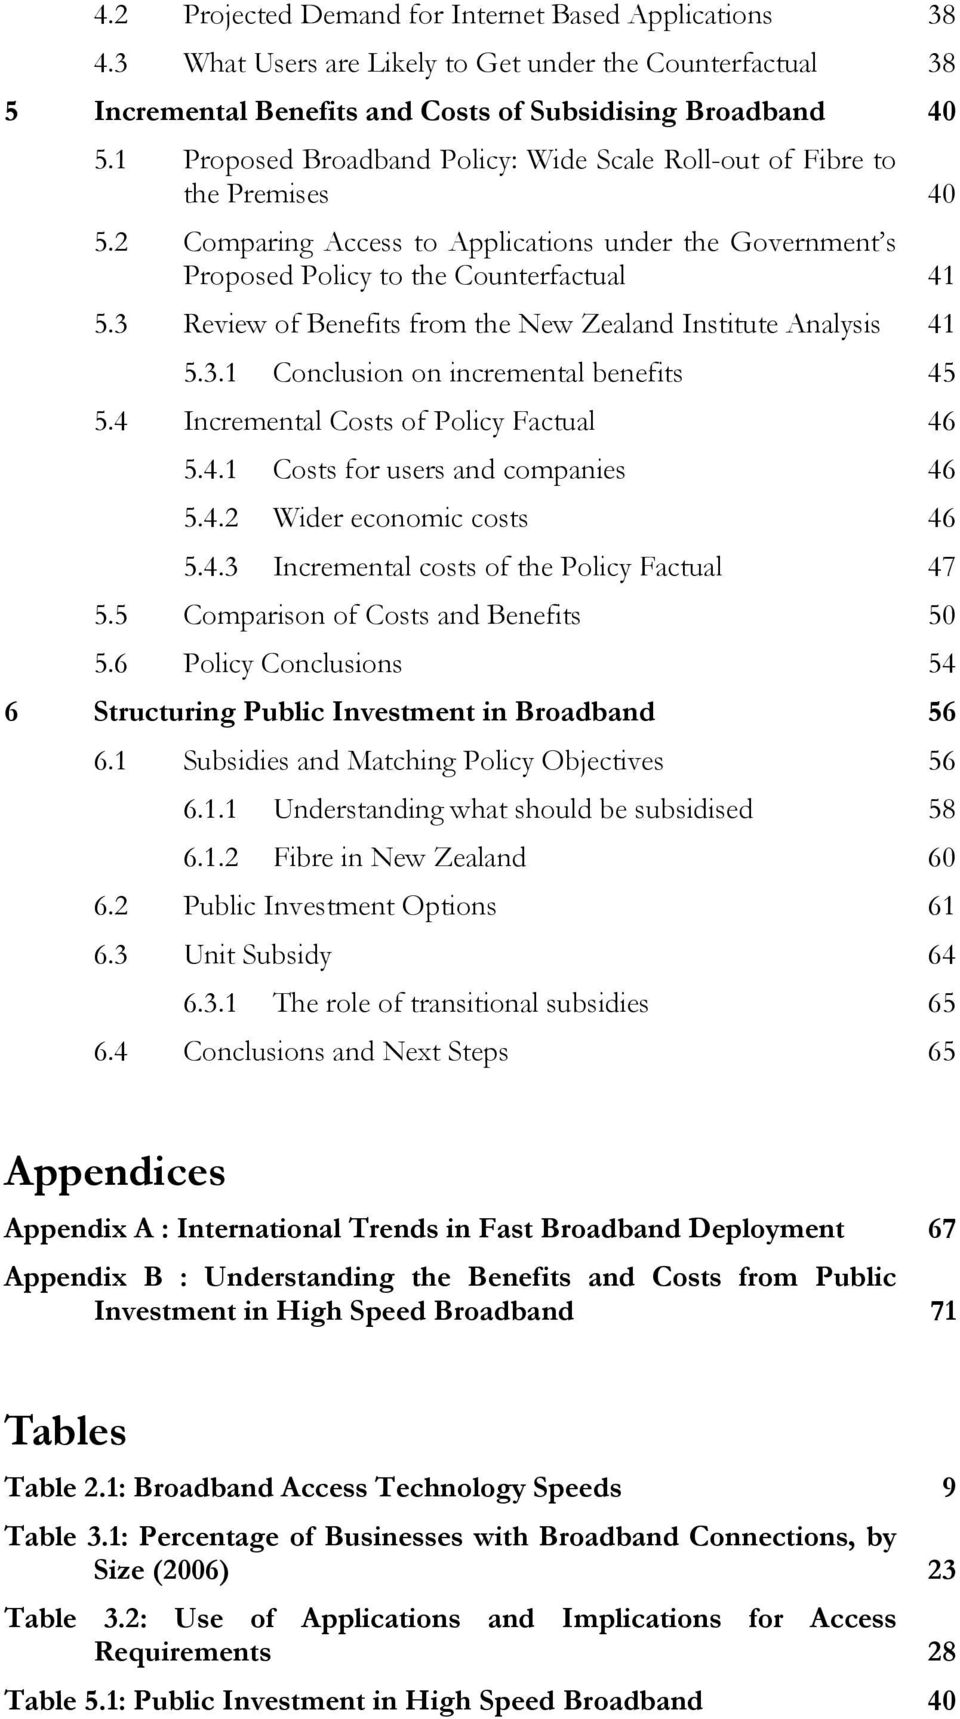 3 Review of Benefits from the New Zealand Institute Analysis 41 5.3.1 Conclusion on incremental benefits 45 5.4 Incremental Costs of Policy Factual 46 5.4.1 Costs for users and companies 46 5.4.2 Wider economic costs 46 5.